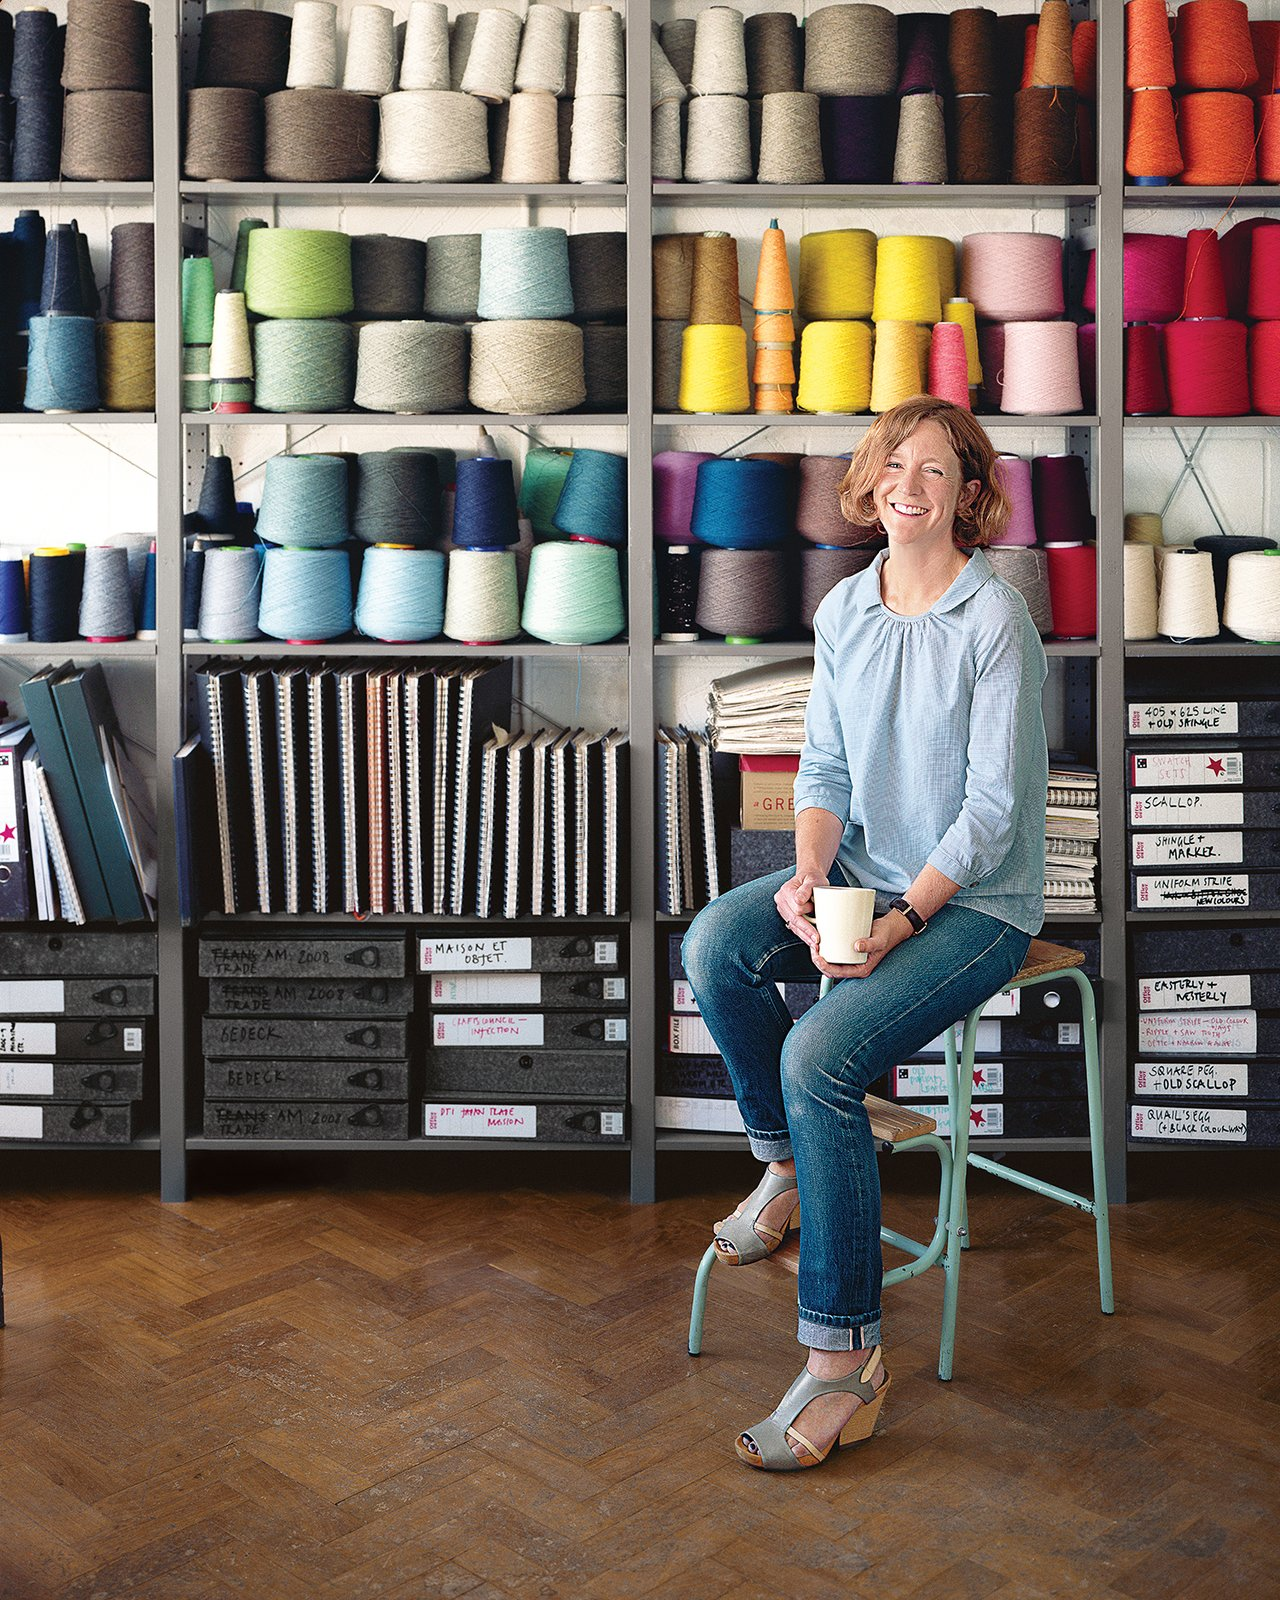 London-based designer Eleanor Pritchard sources Shetland lambswool from mills across the United Kingdom for her blankets, pillows, and upholstery. She designs the fabric patterns in her Deptford studio, near Greenwich, in a converted warehouse called Cockpit Studios.  Photo 2 of 7 in A Look Inside Eleanor Pritchard's Textile Studio